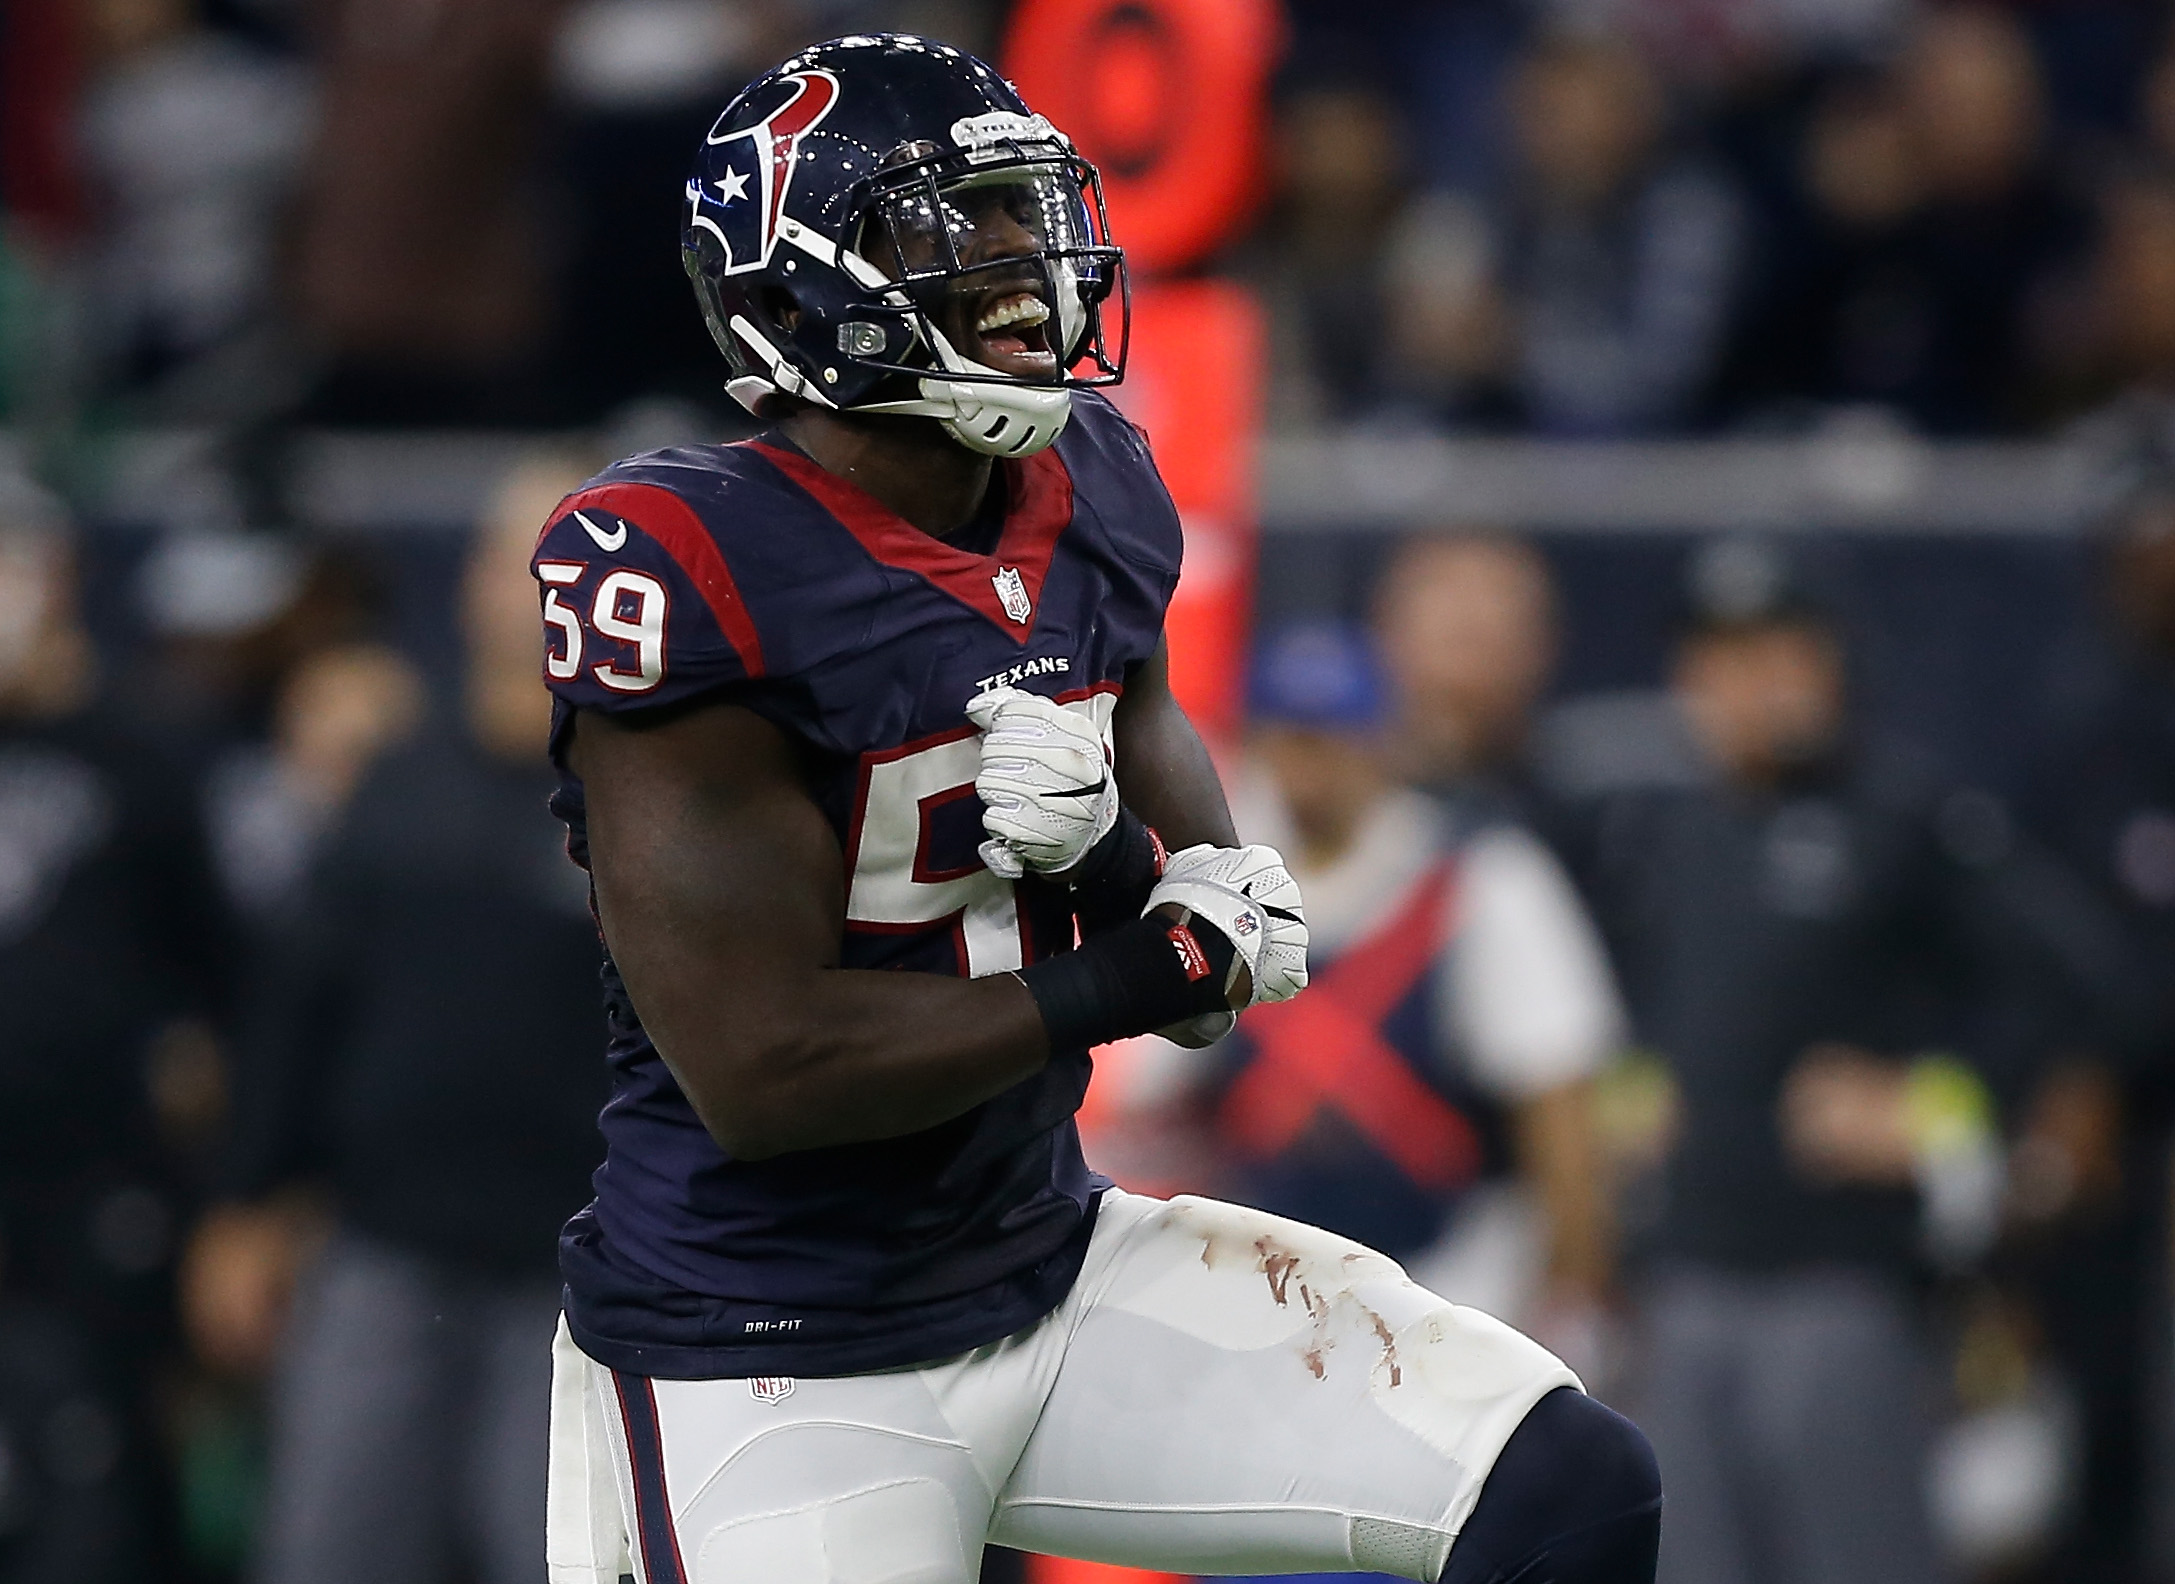 houston texans playoffs, texans schedule, when, who what team do texans play, date, time, where, divisional round, date, tickets